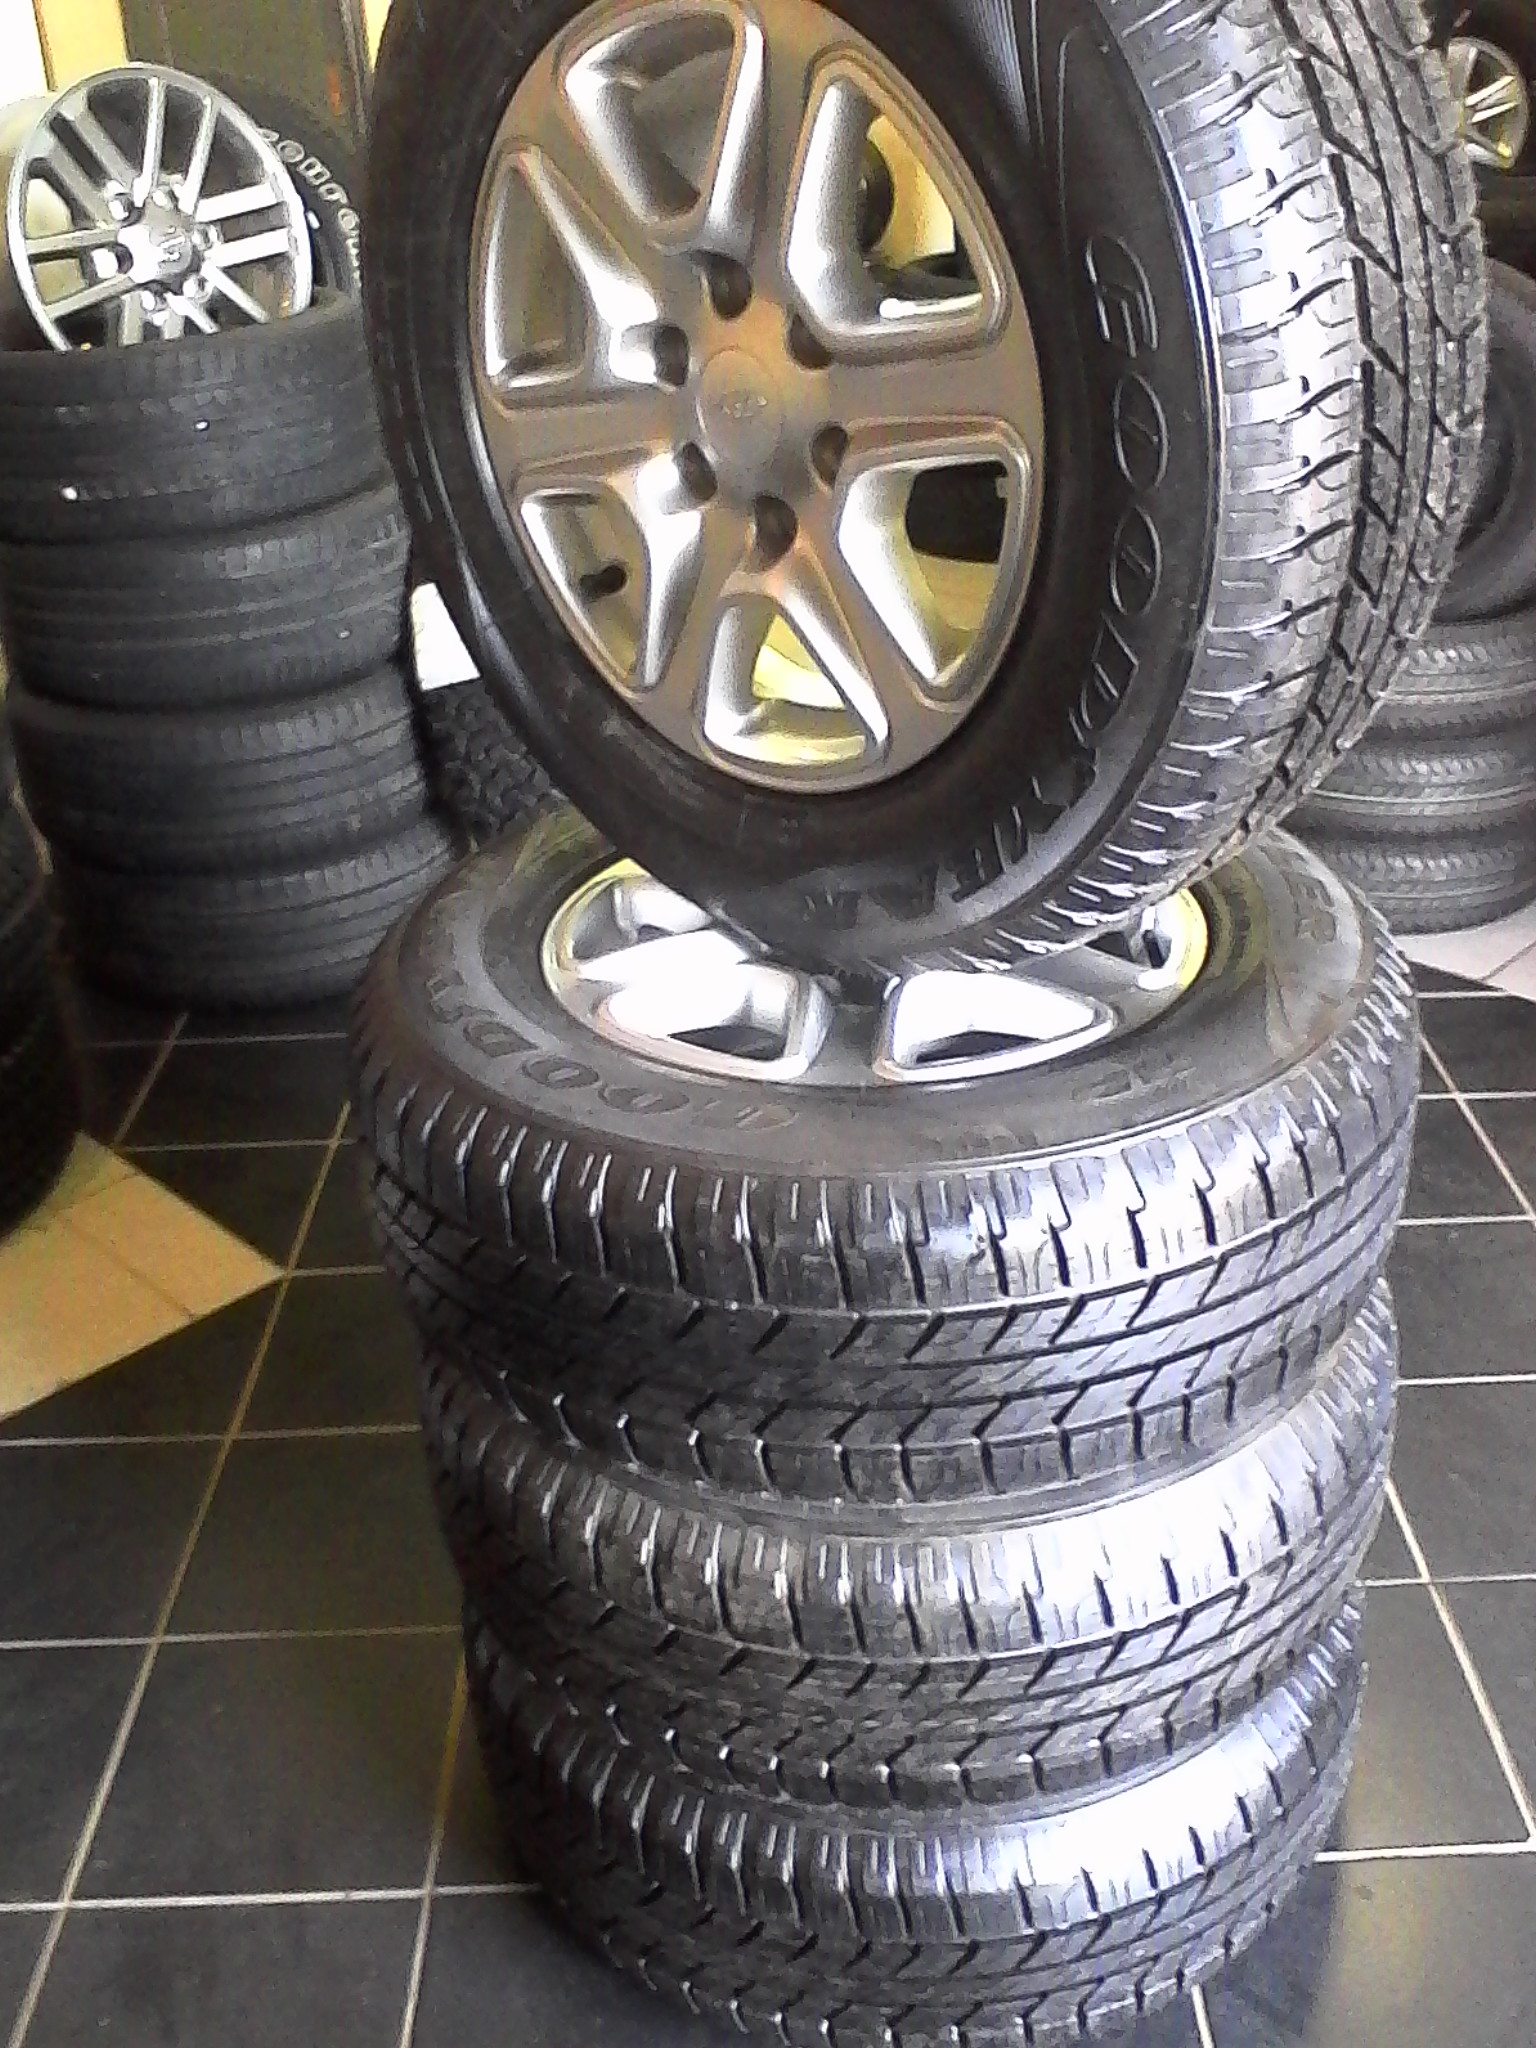 New Ford Ranger 17 inch mags and 265/65/17 good year wrangler tyres at affordable prices , for 9999